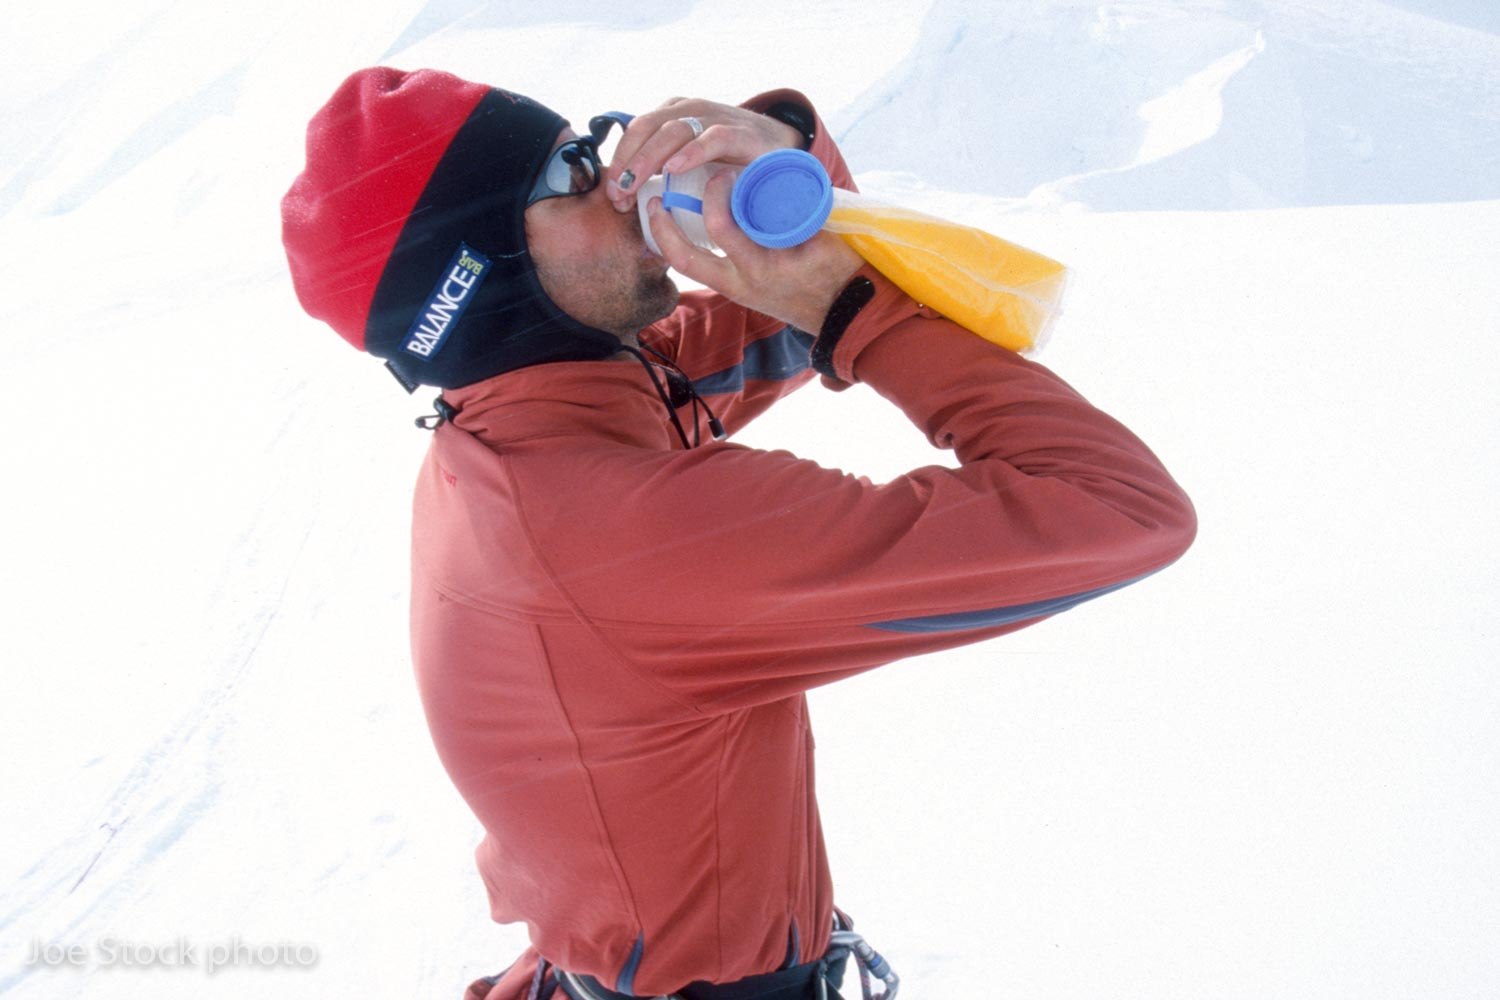 Disaster! Joe drinking strong Tang from a malodorous bottle. His regular water bottle cracked.